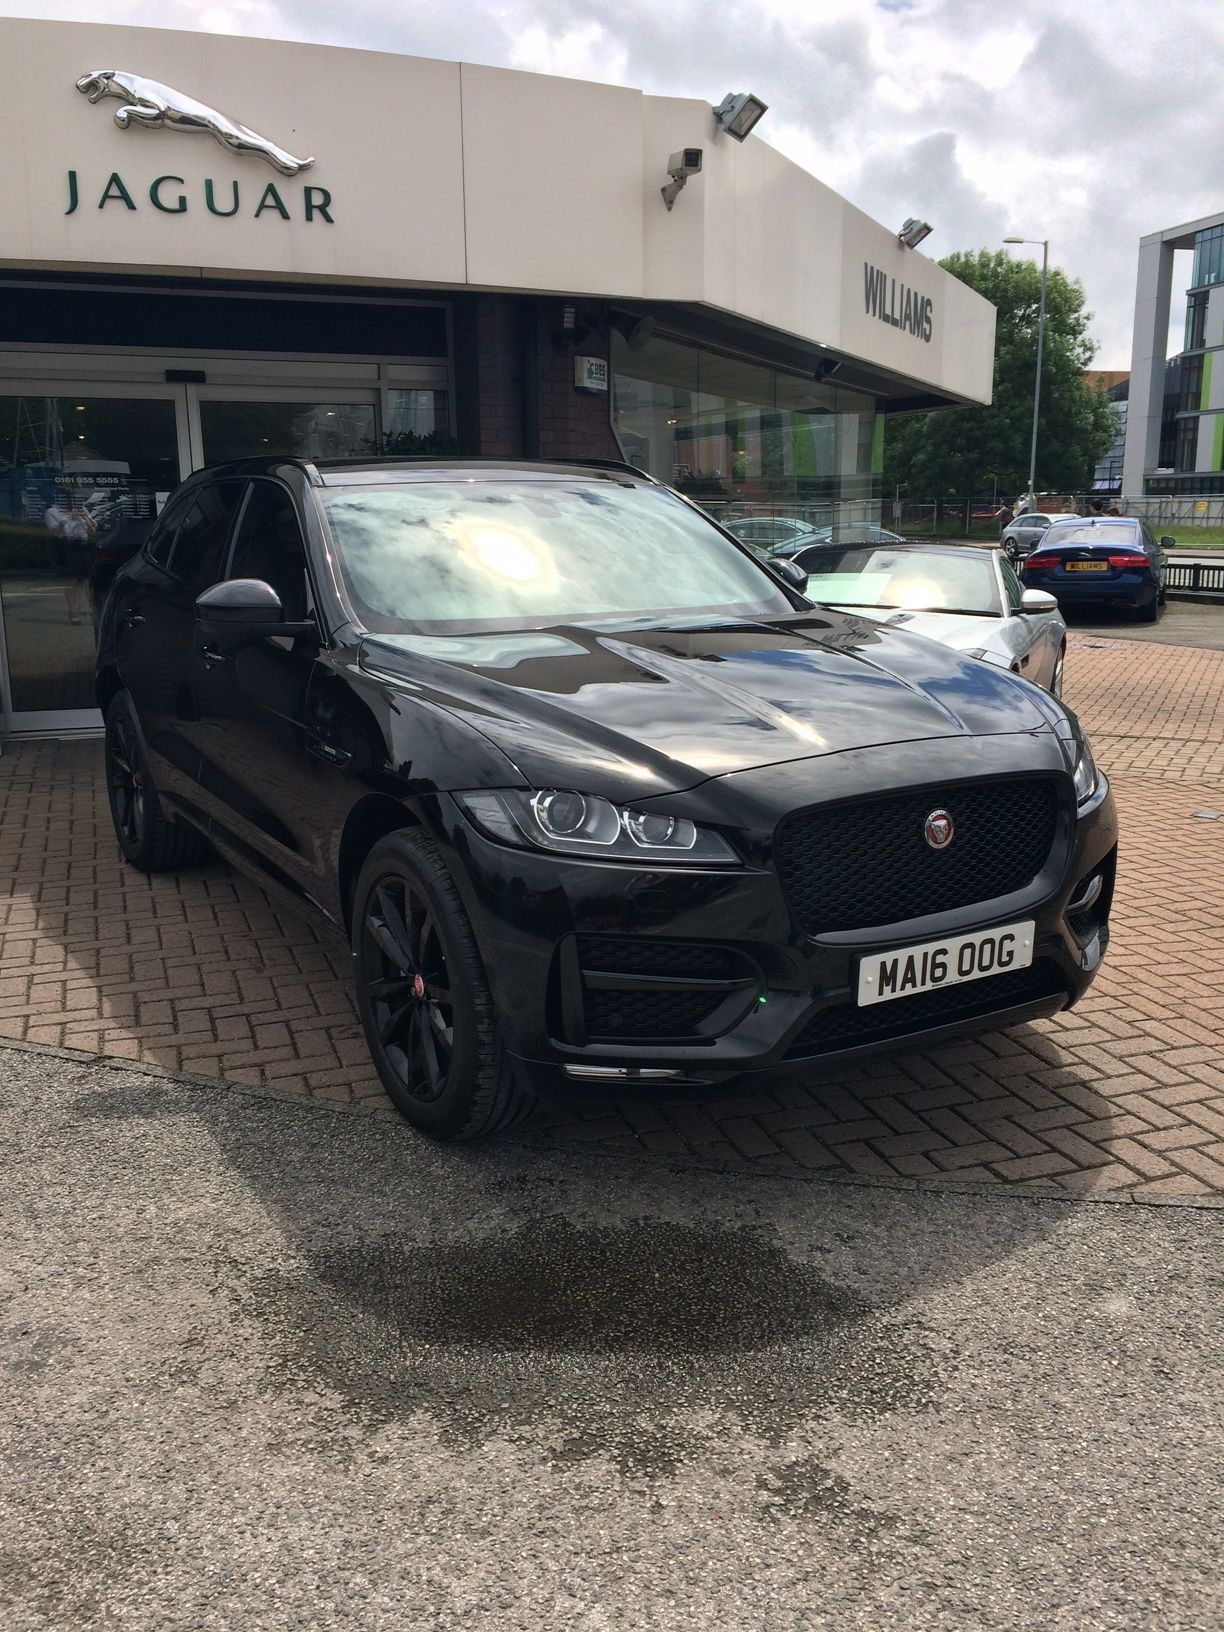 The Jaguar F Pace Carleasing Deal One Of The Many Cars Available To Lease At Www Carlease Uk Com Jaguar Car Jaguar Suv Cool Cars